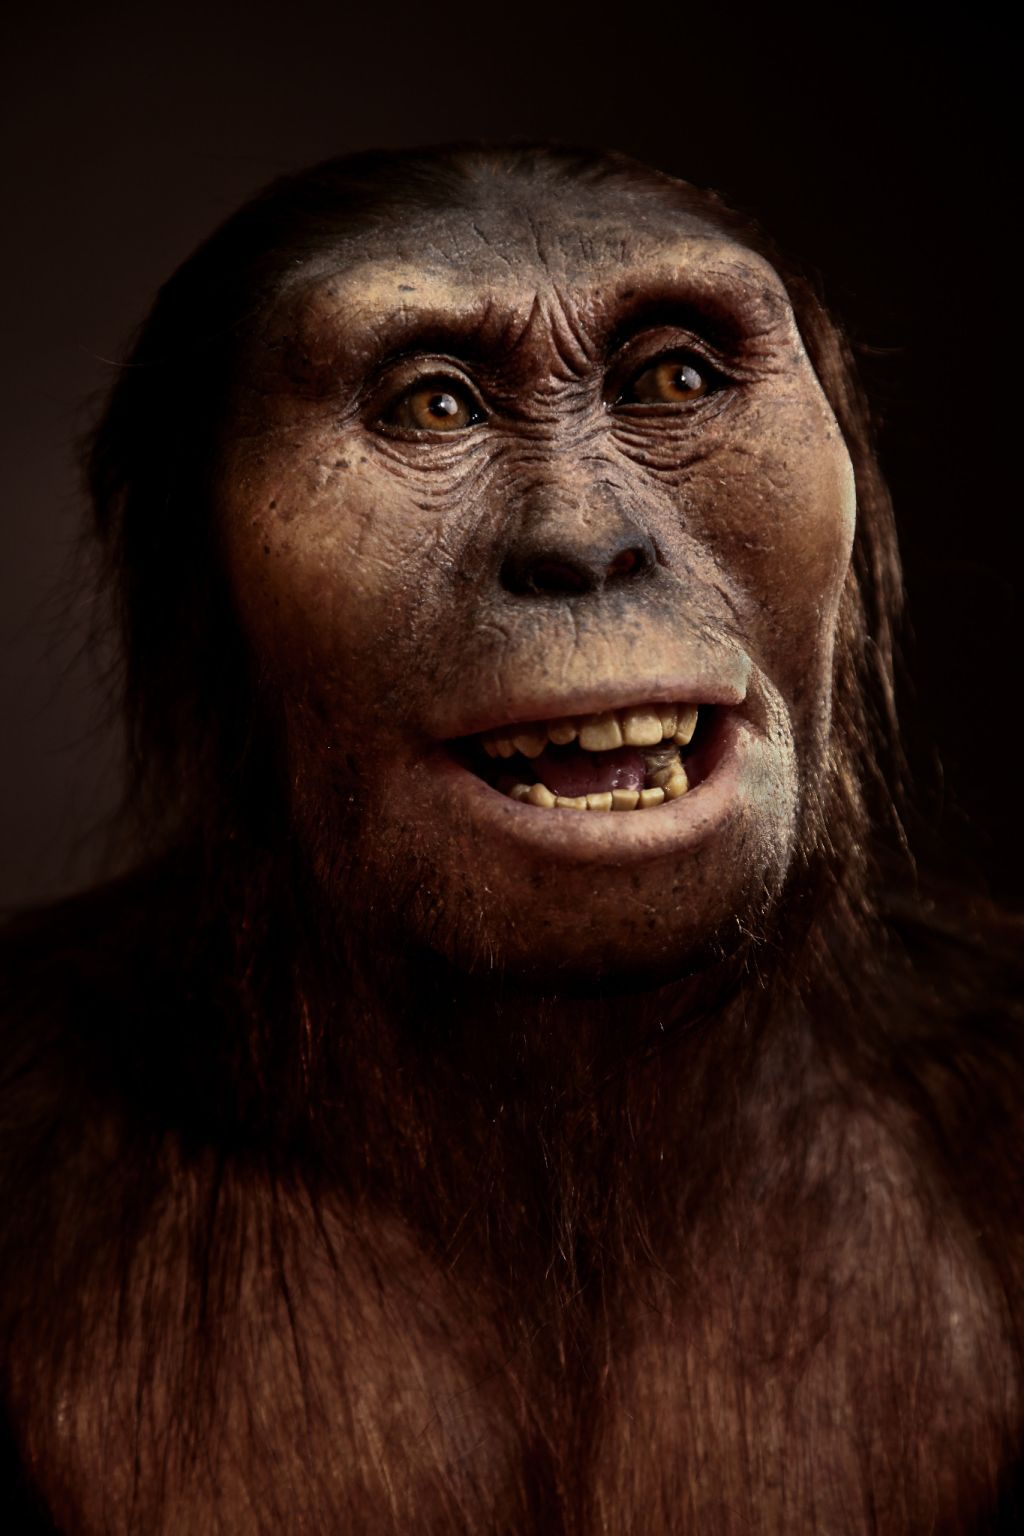 Lucy Australopitecus Afarensis An Extinct Hominid That Lived Between 3 9 And 2 9